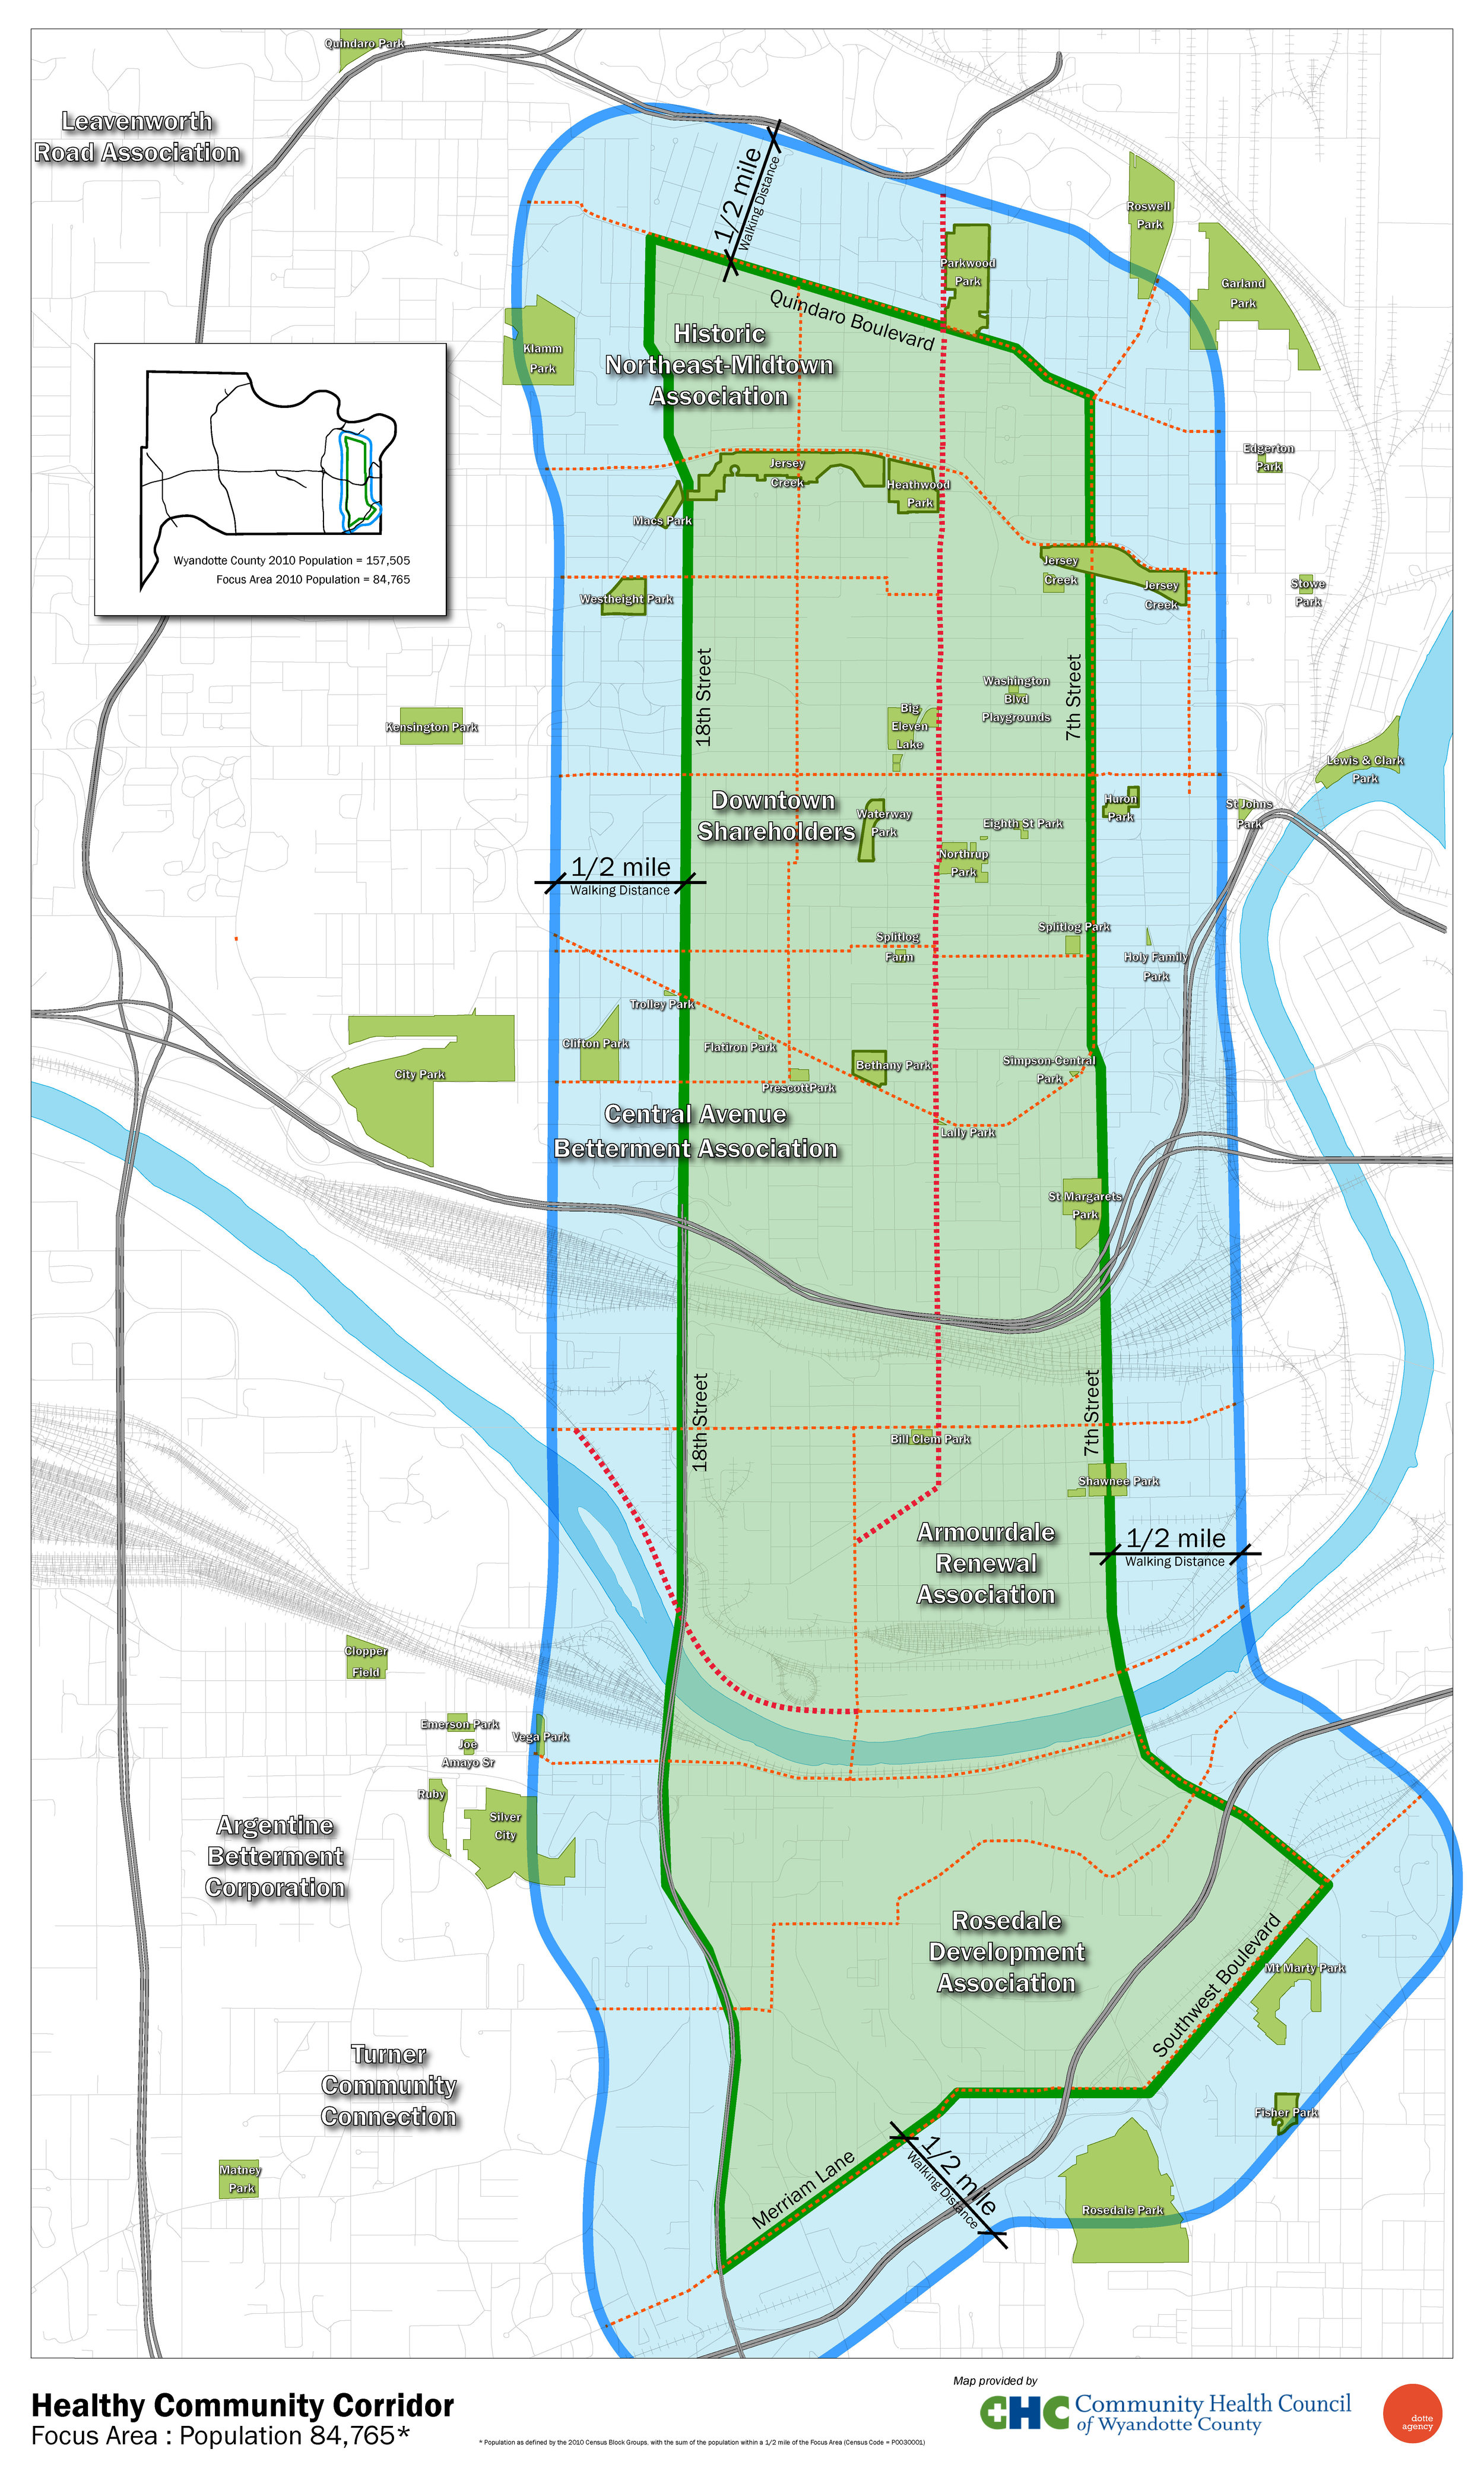 The Healthy Community Corridor, defined as those within walking distance of 10th street, and a 1/2 mile buffer from there.